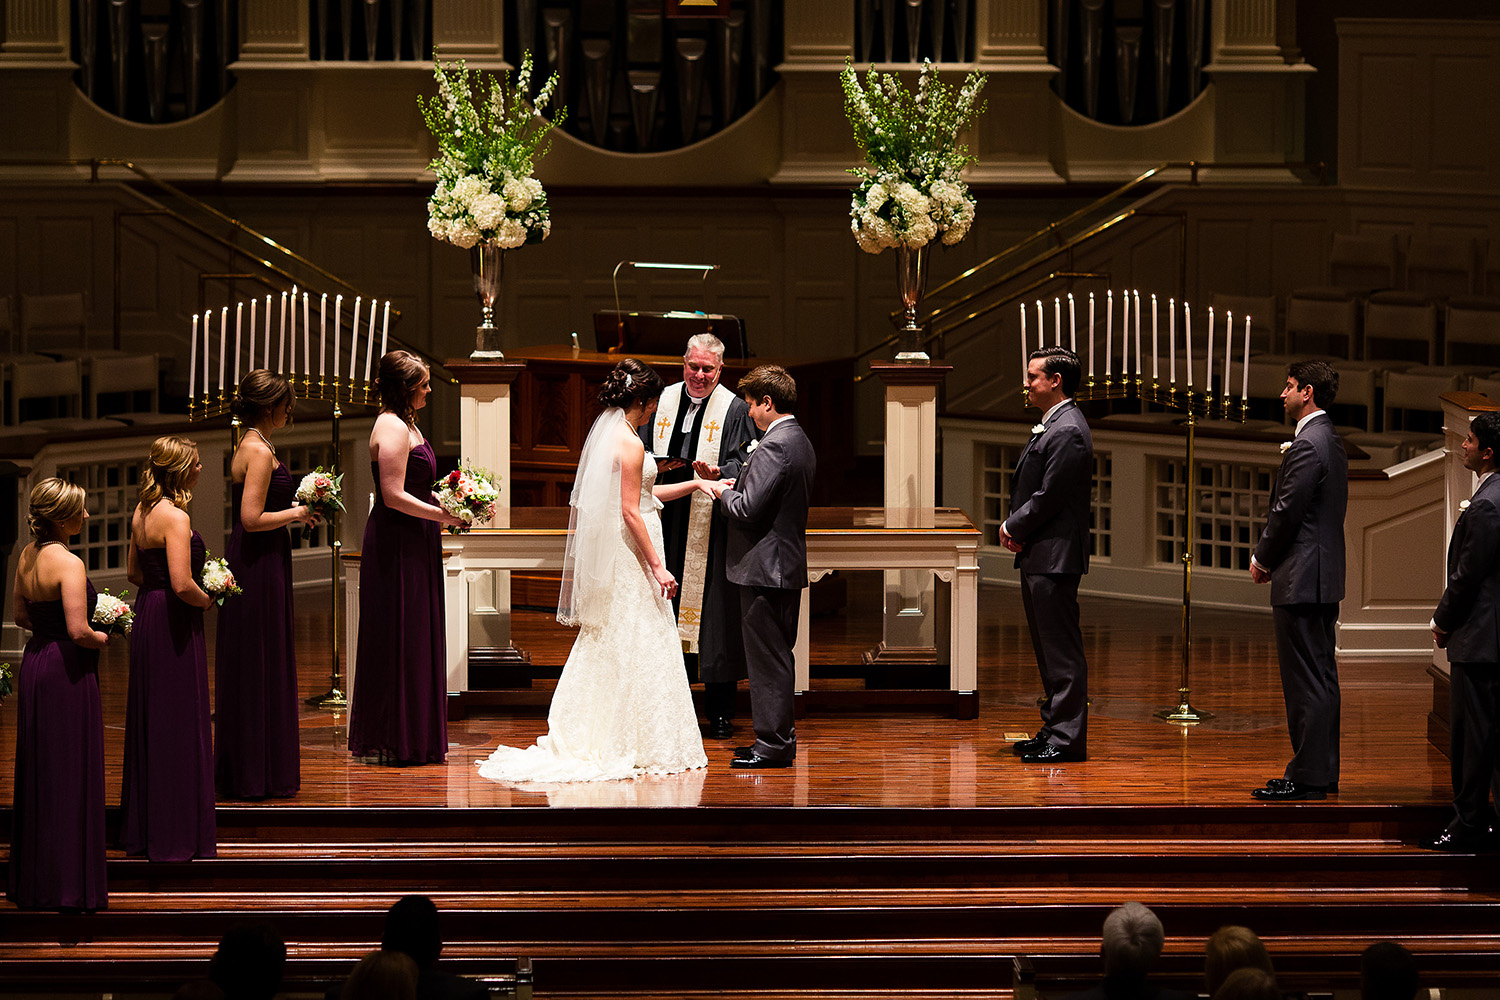 This fall ceremony was indoor after sun had set. All light was coming from directly overhead with the stage lights, which created heavy shadows but also an intimate feel.